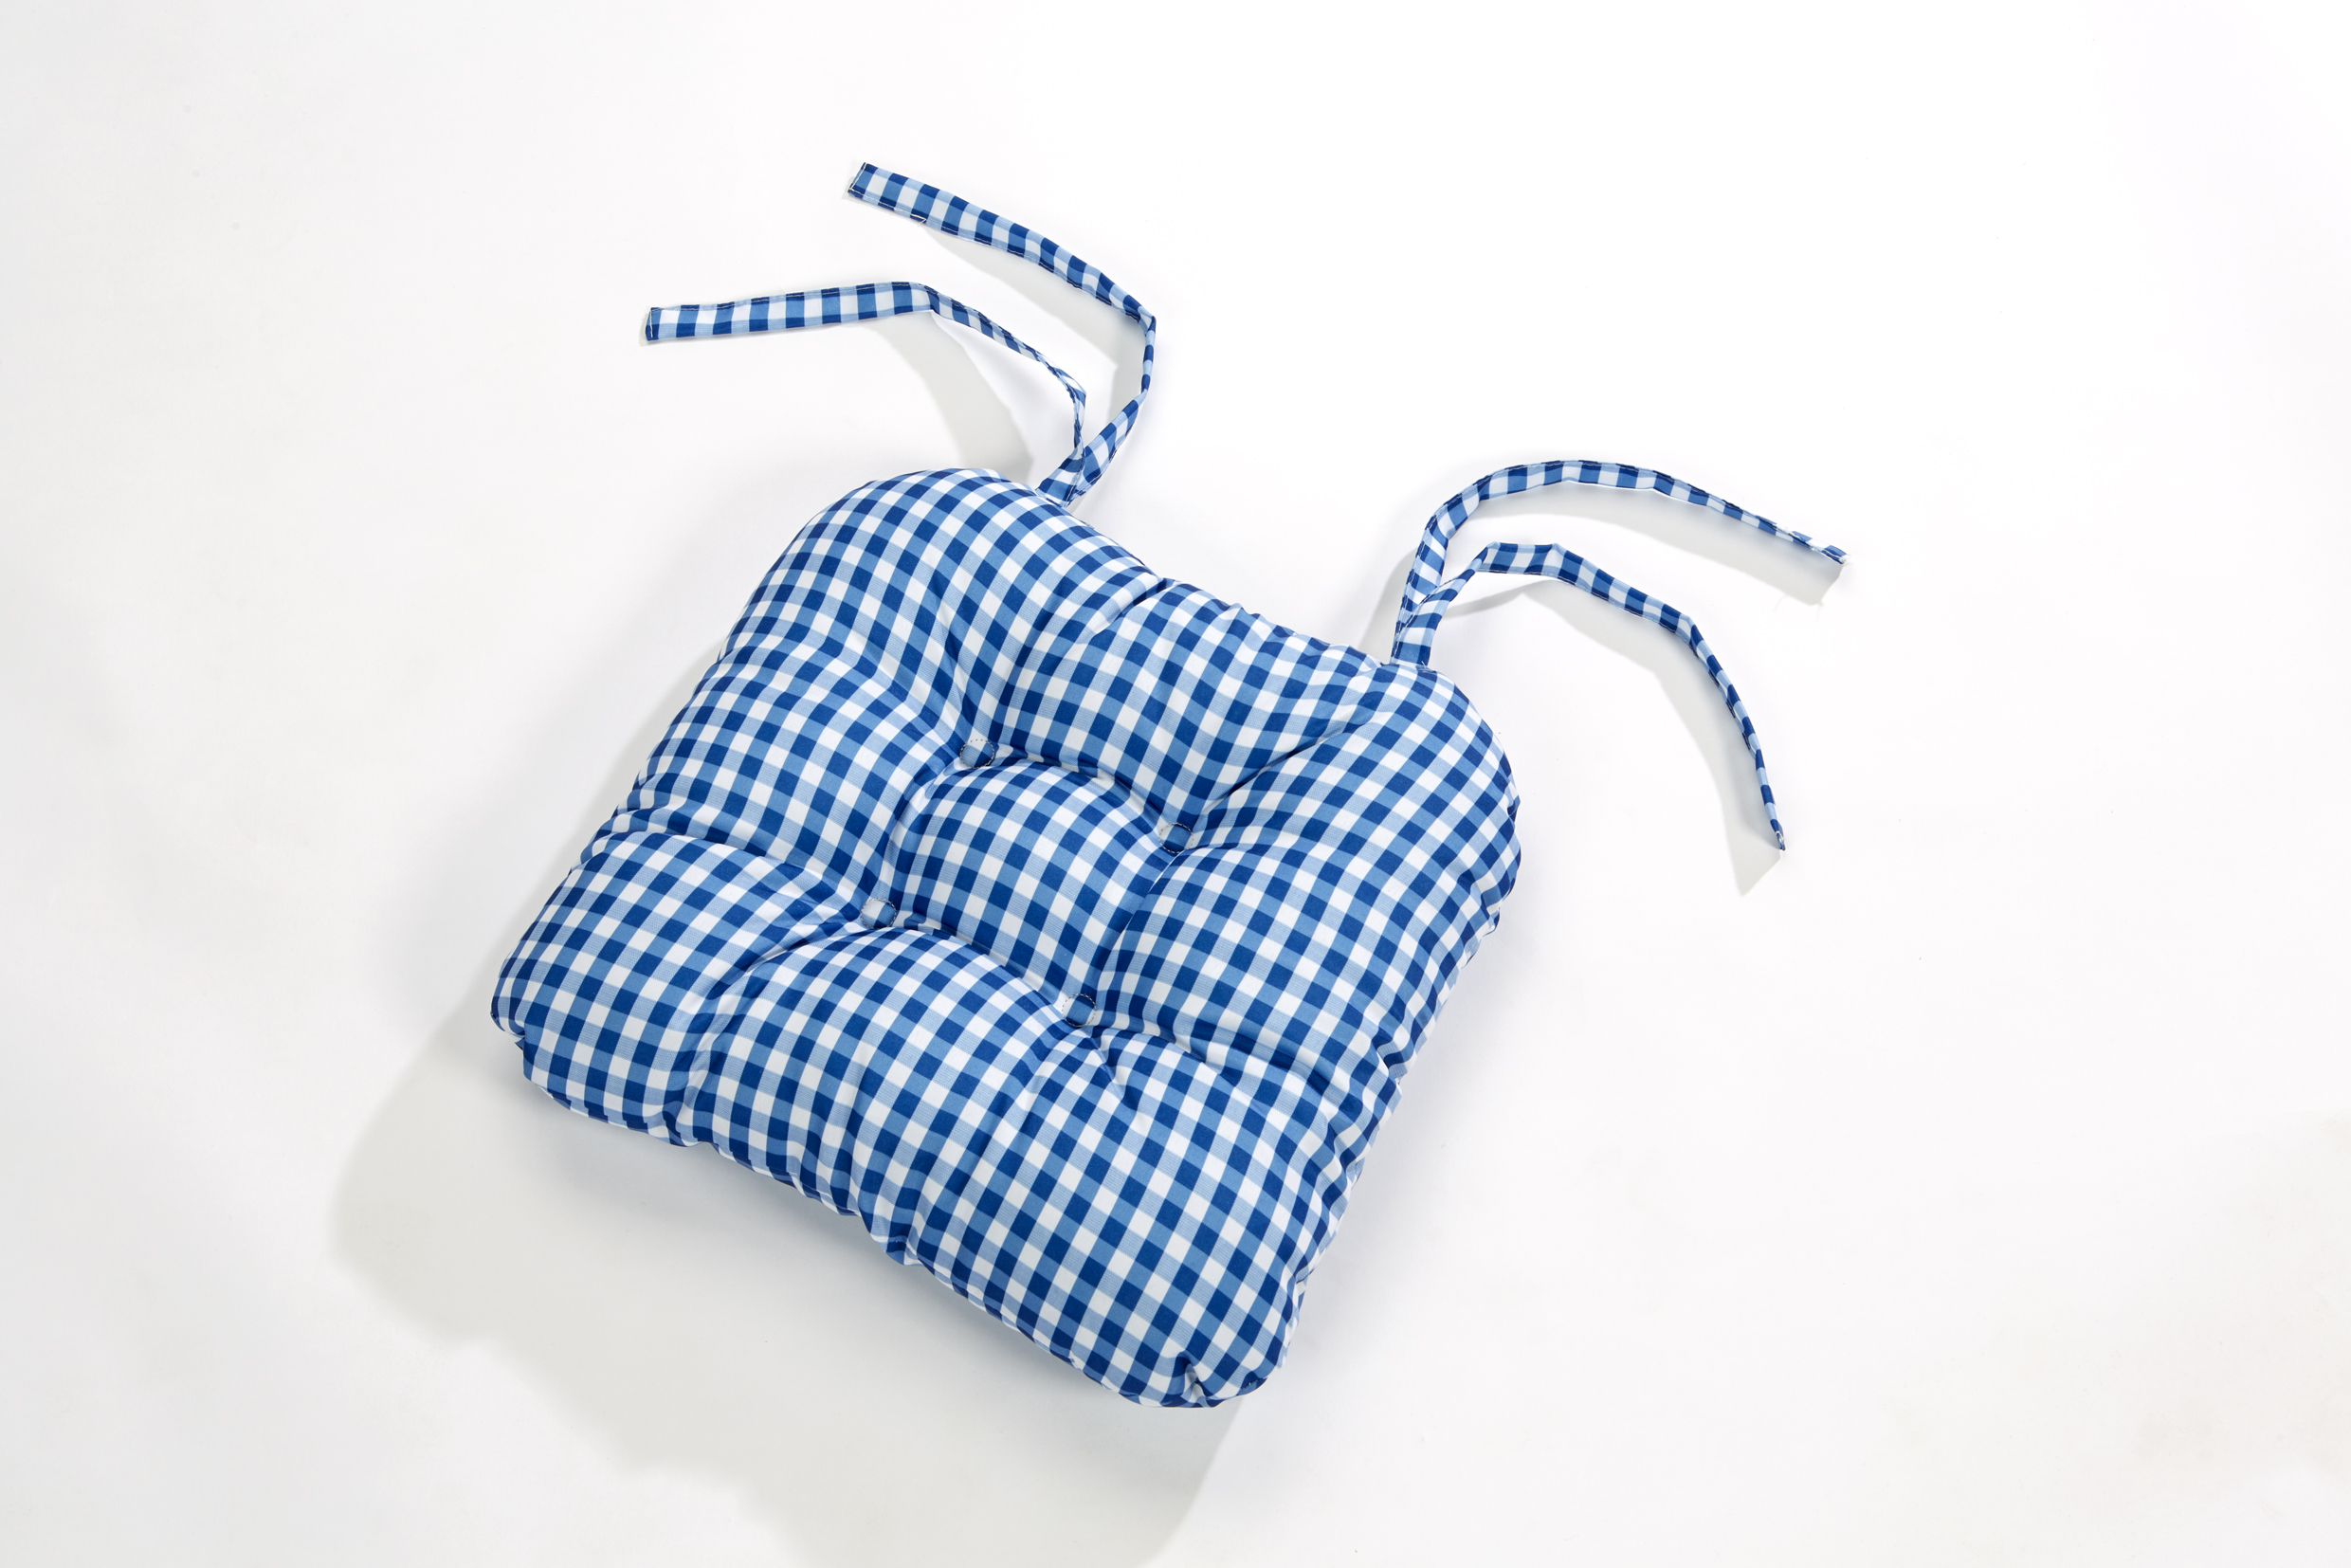 gingham check quilted style seat pad cushion chair tie on dining